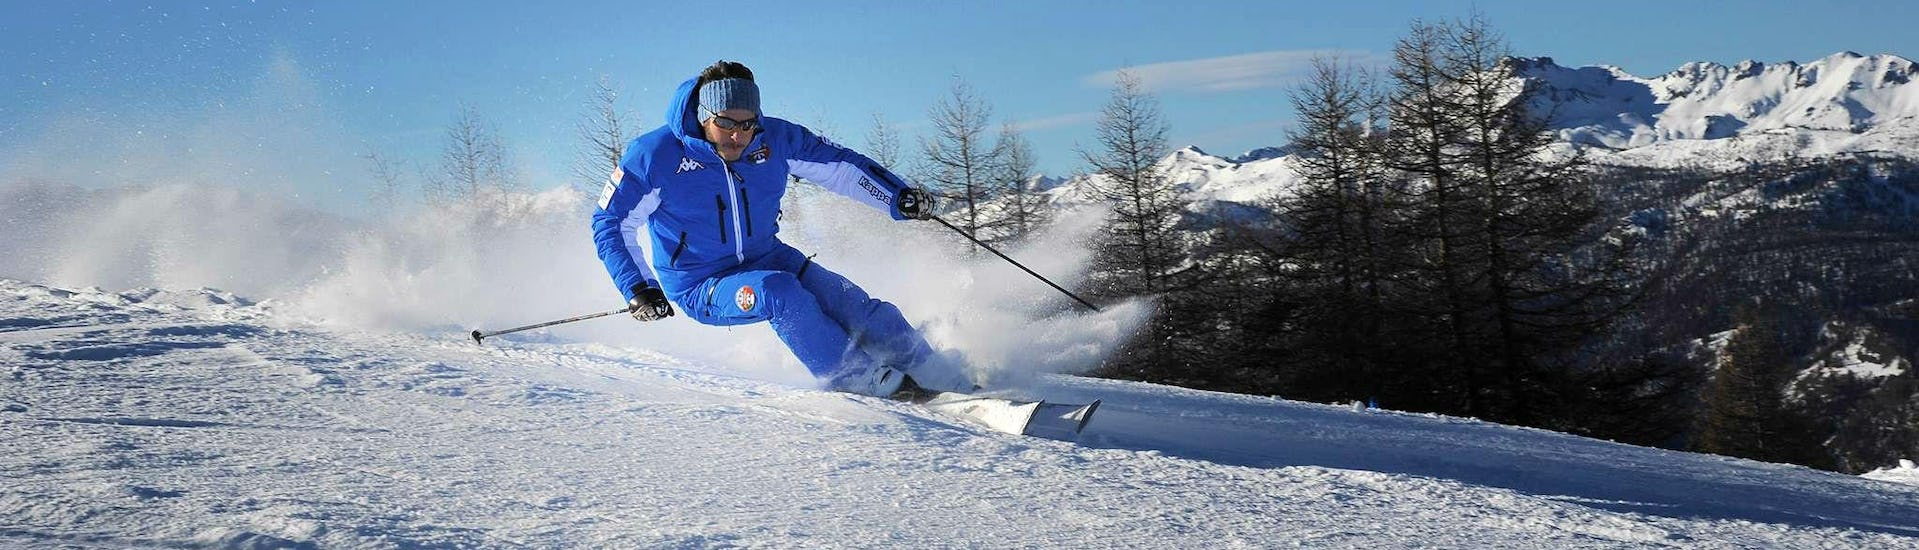 A ski instructor from the ski school Scuola di Sci Olimpionica in Sestriere is demonstrating the correct carving technique during one of the Ski Lessons for Adults - Advanced.